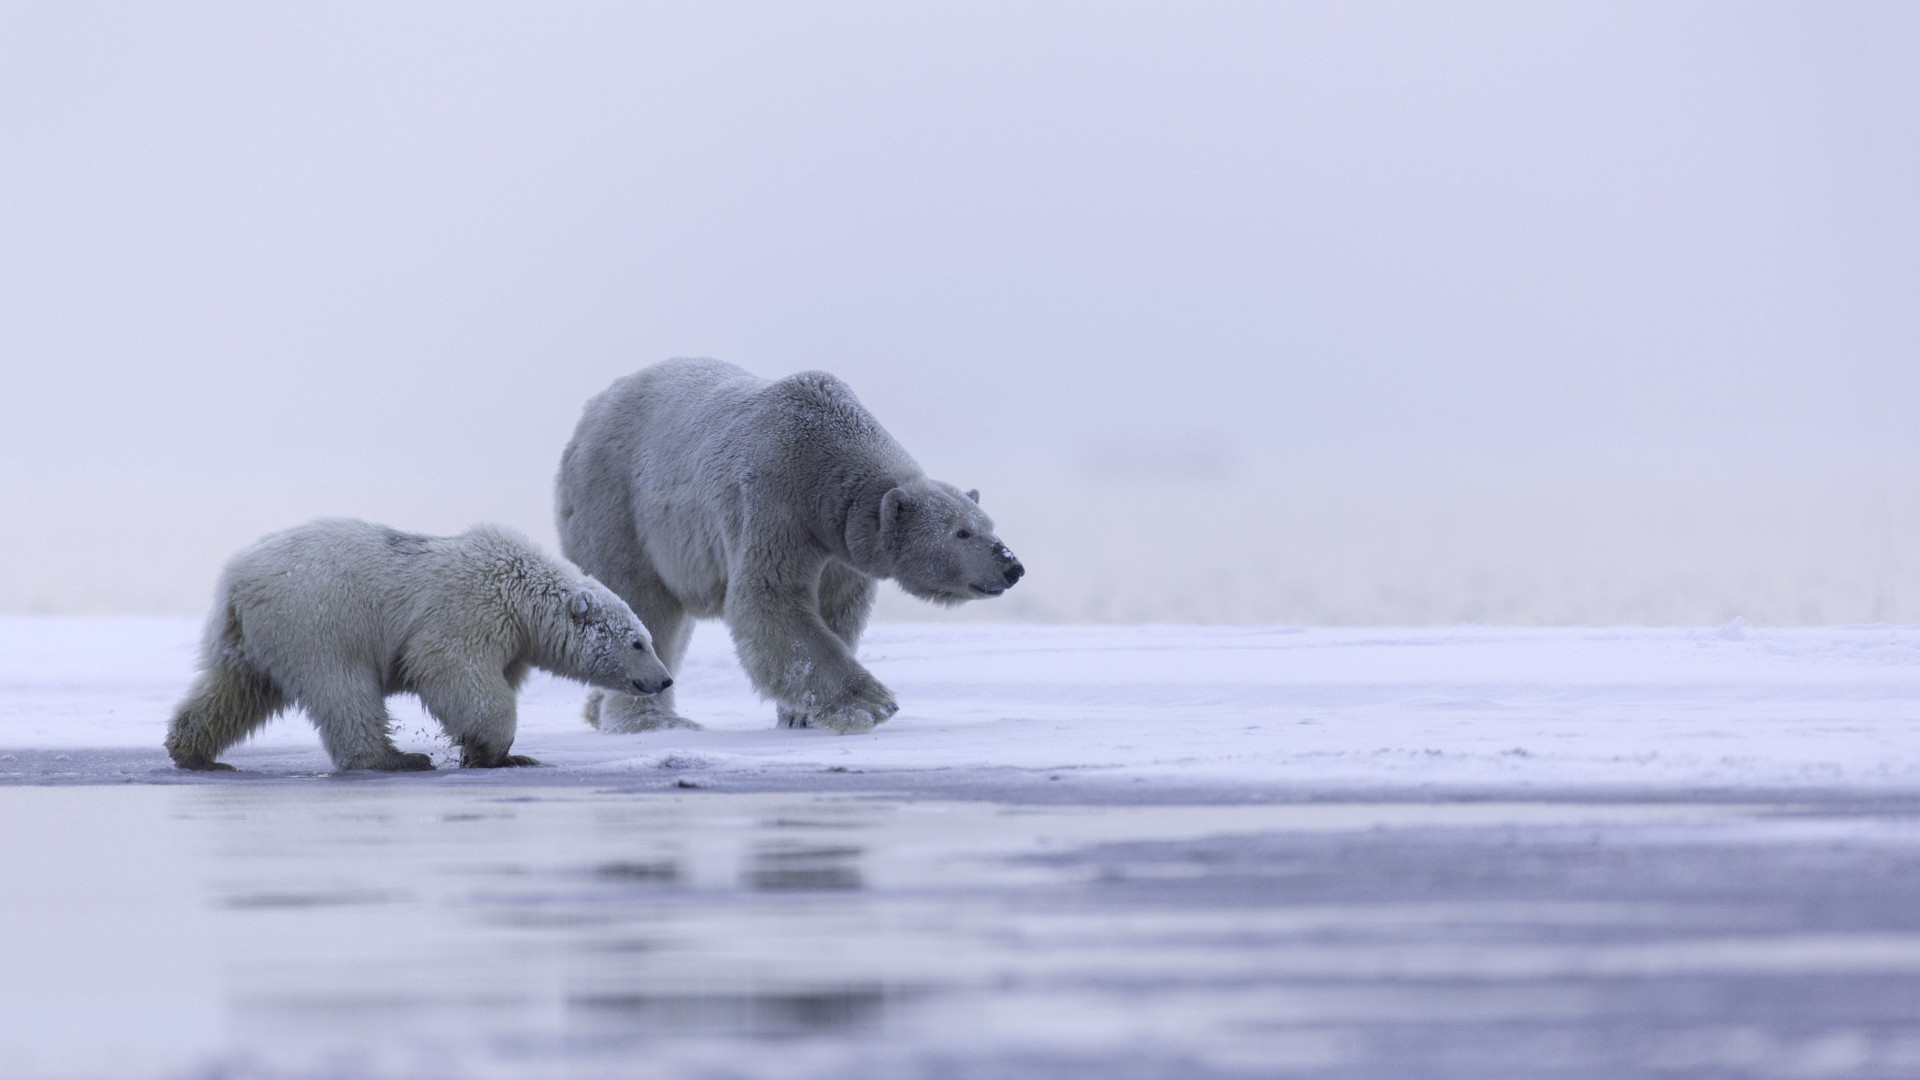 Polar bears: mother and cub wallpaper 1920x1080